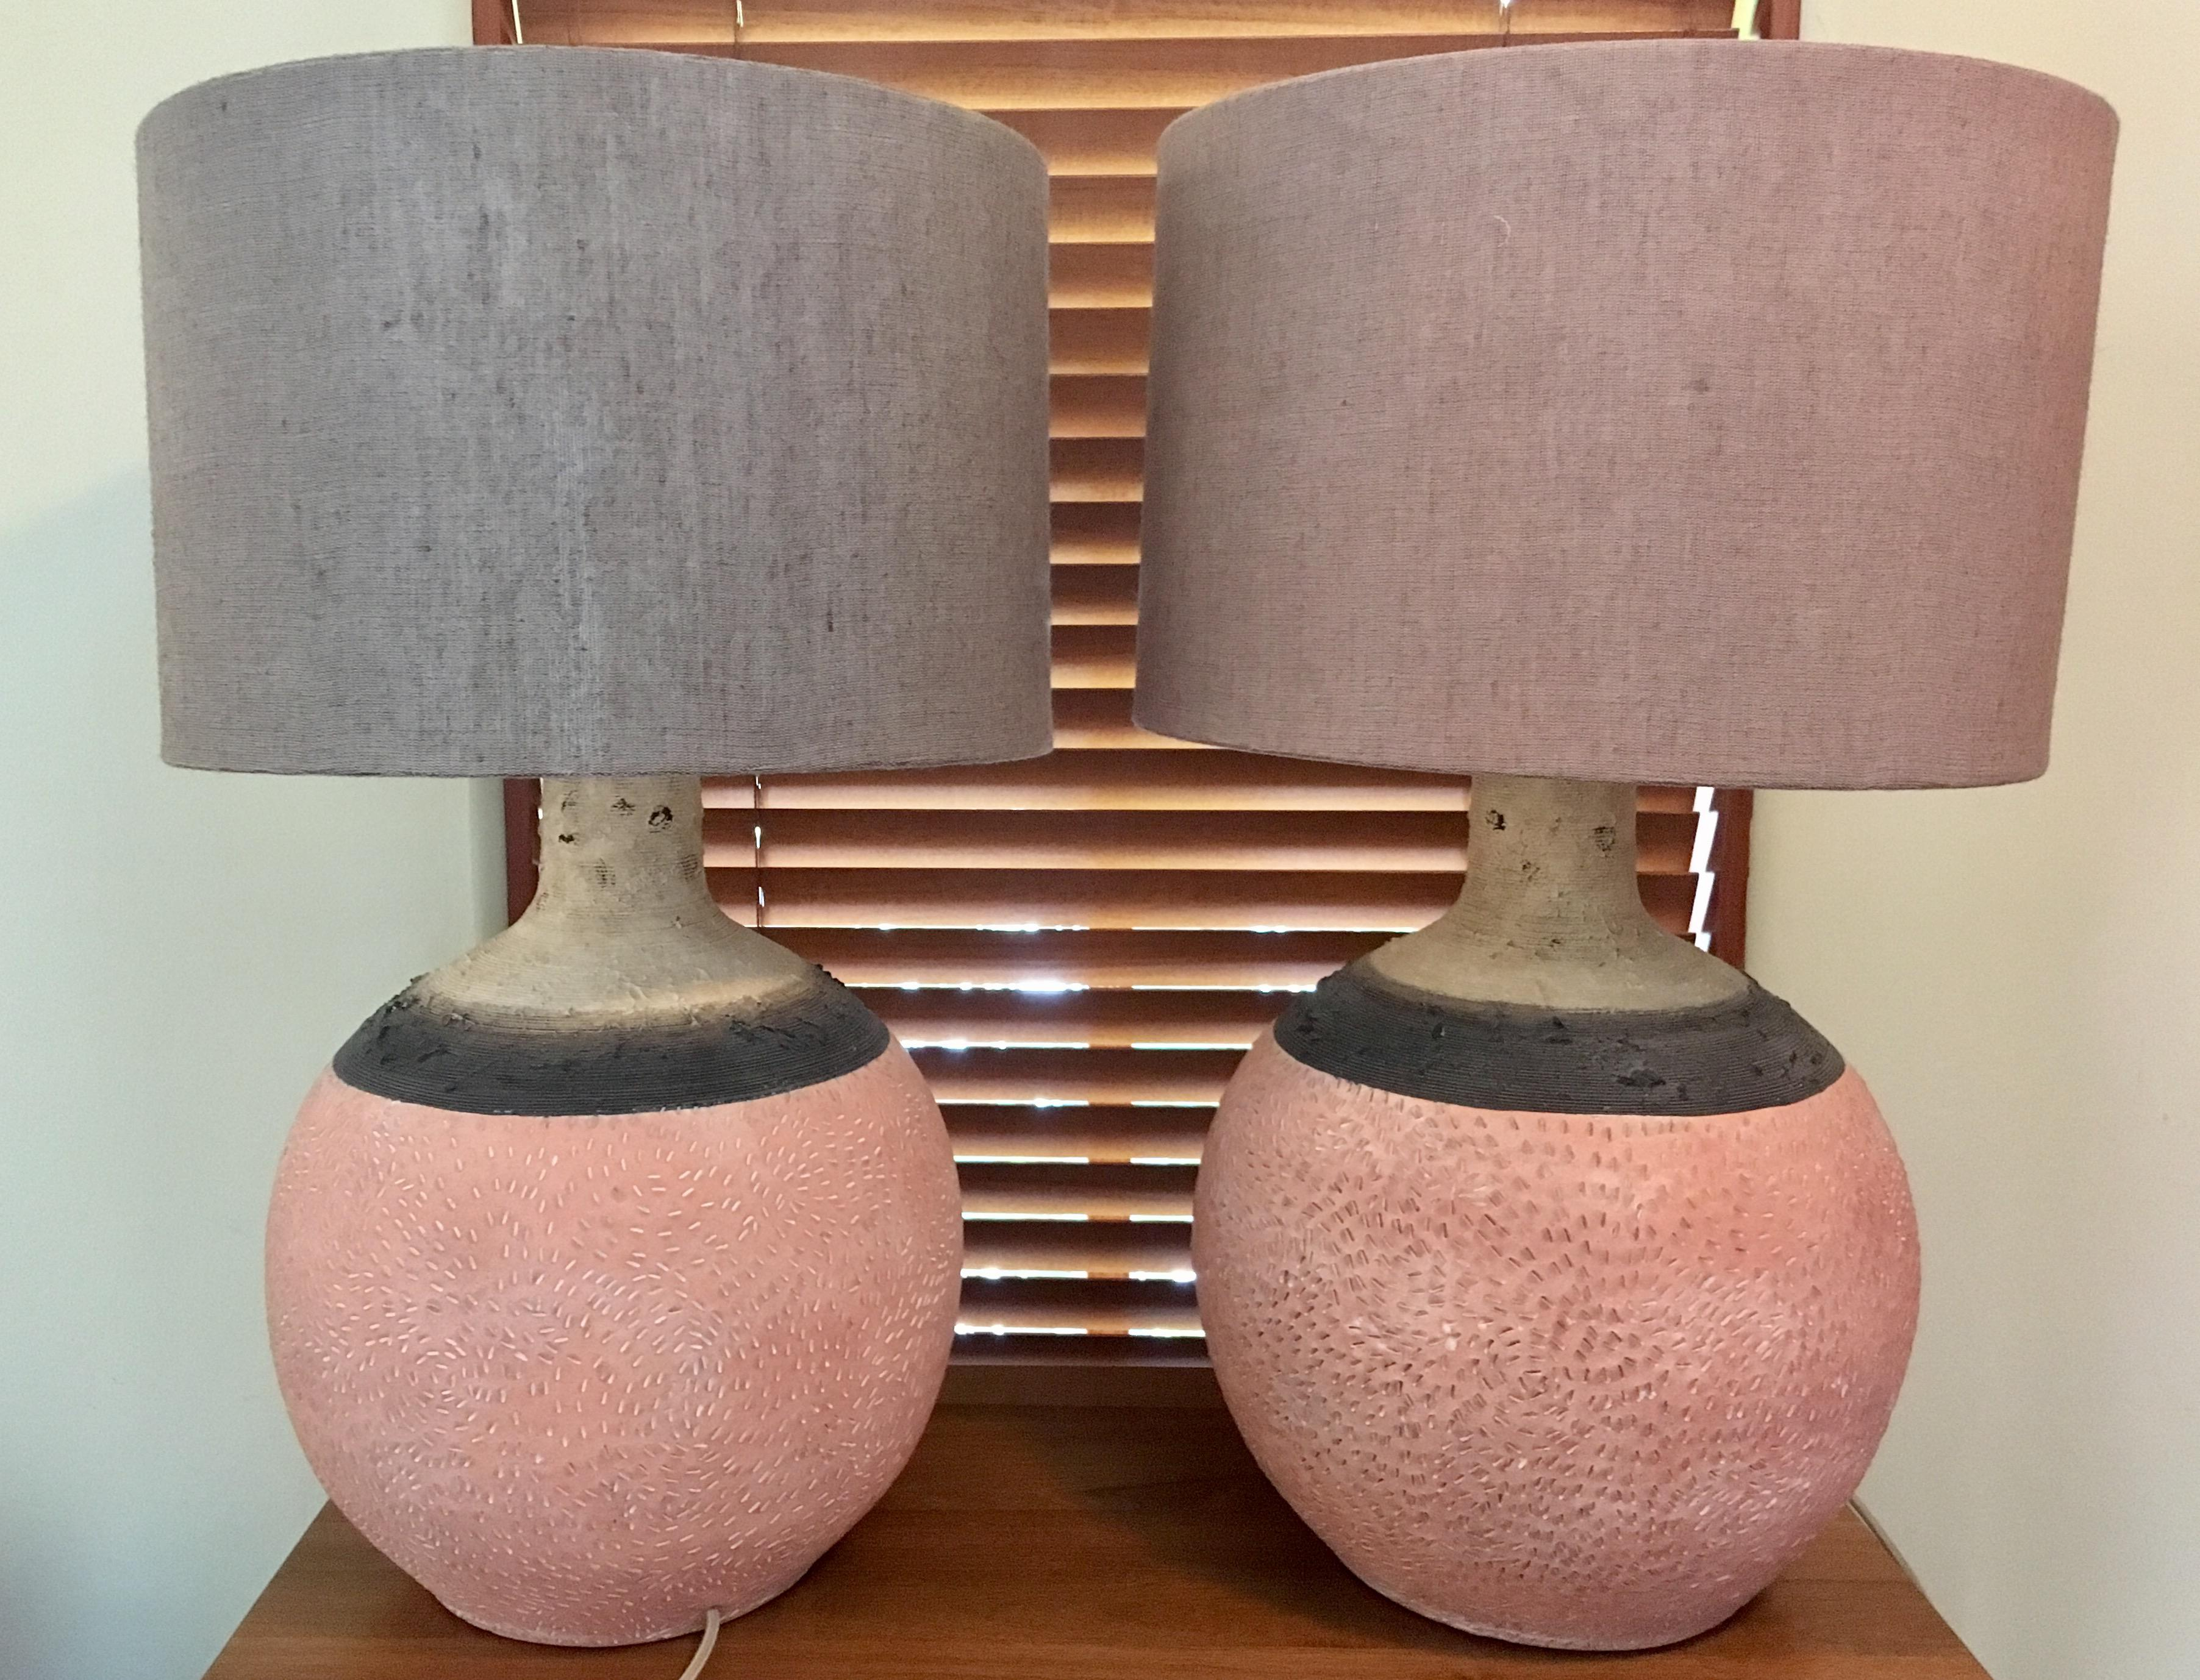 Anthropologie Hand Painted Earthenware Lamps   A Pair   Image 2 Of 4